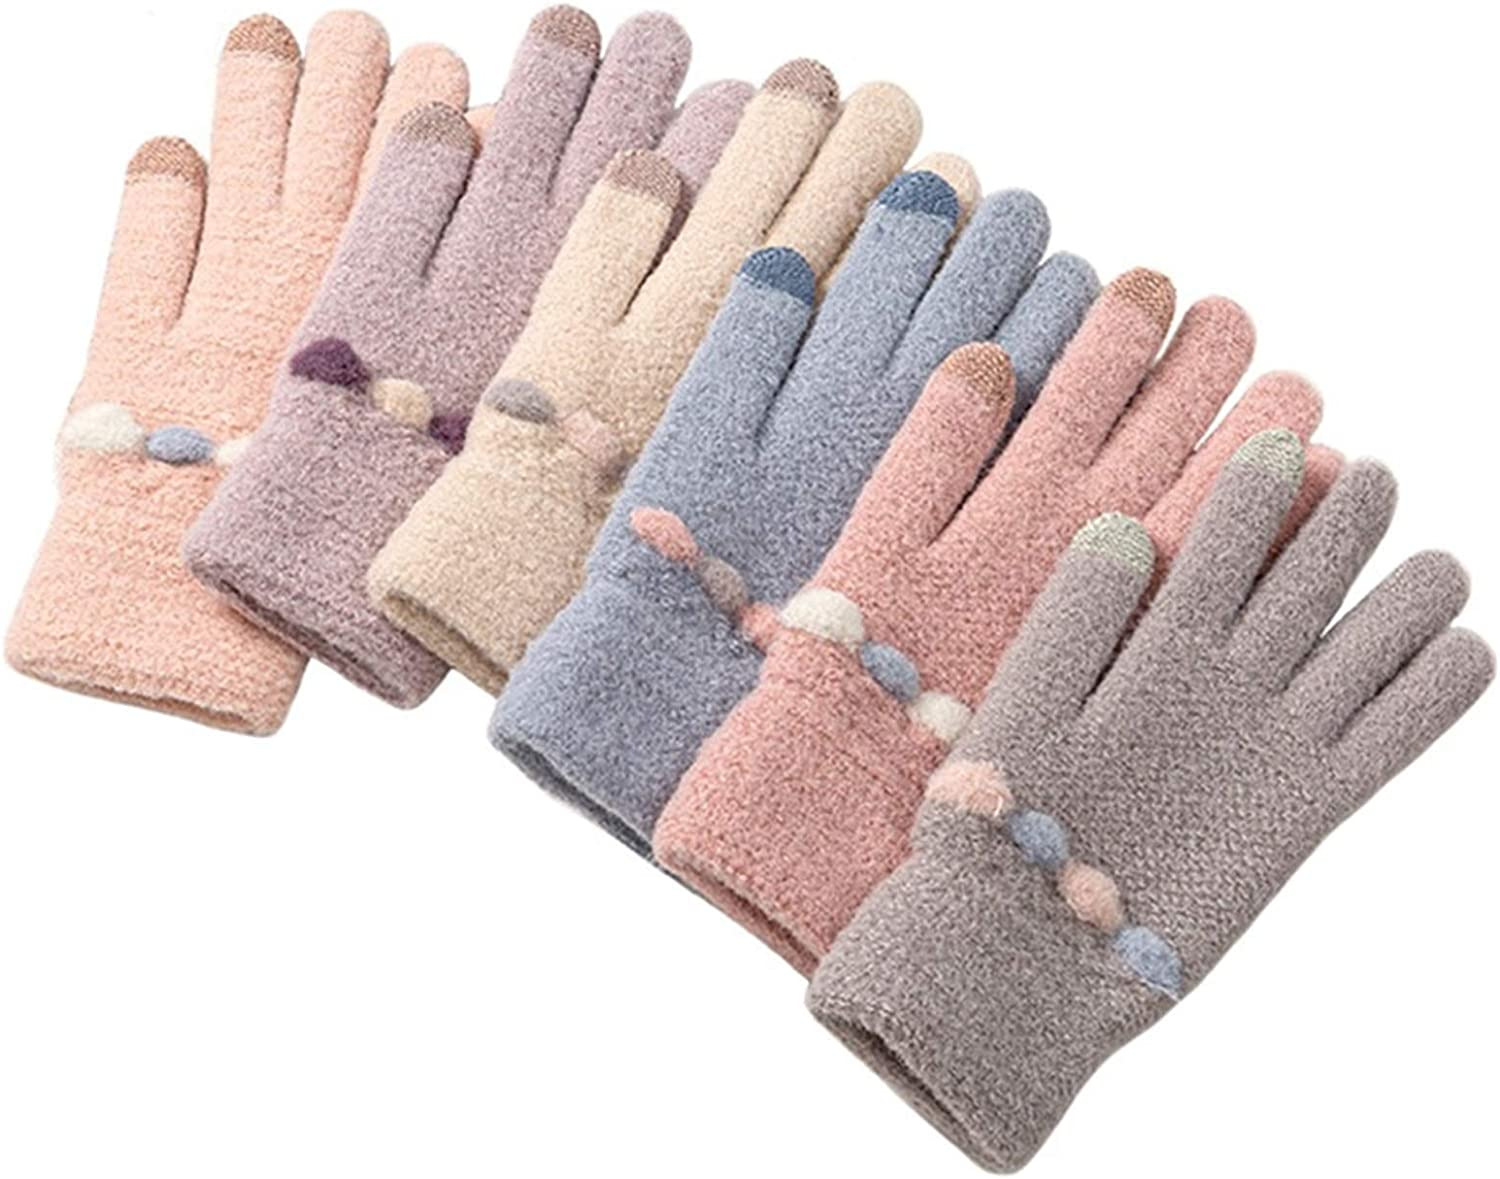 A-YSJ Winter Touch Screen Knitted Gloves Women's Mittens Thick Plush Warm Wrist Elastic Gloves for Driving (Color : Blue, Gloves Size : One Size)